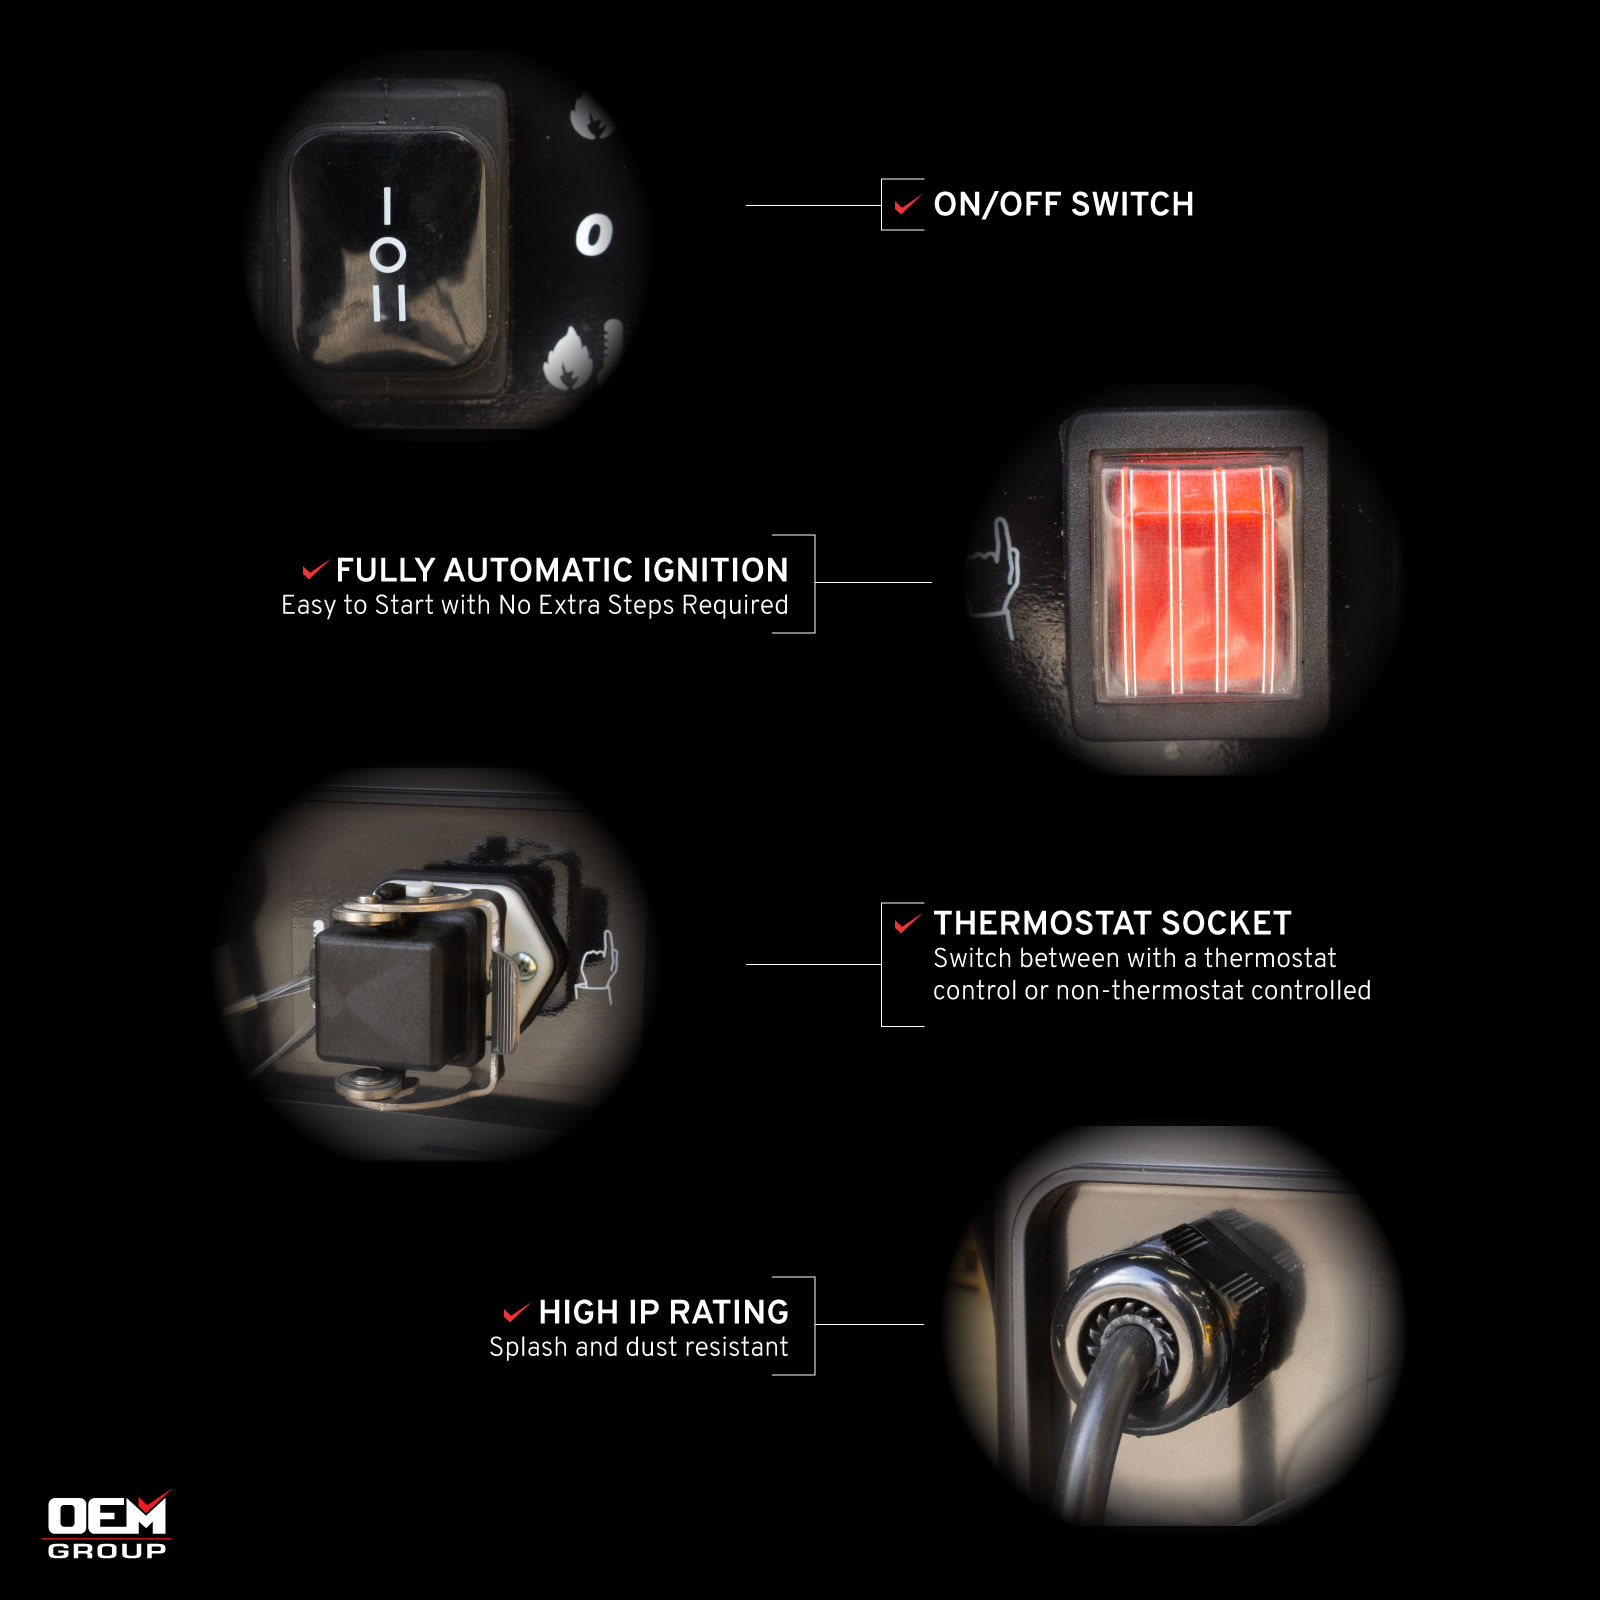 Jetfire J45A Heater Feature Descriptions